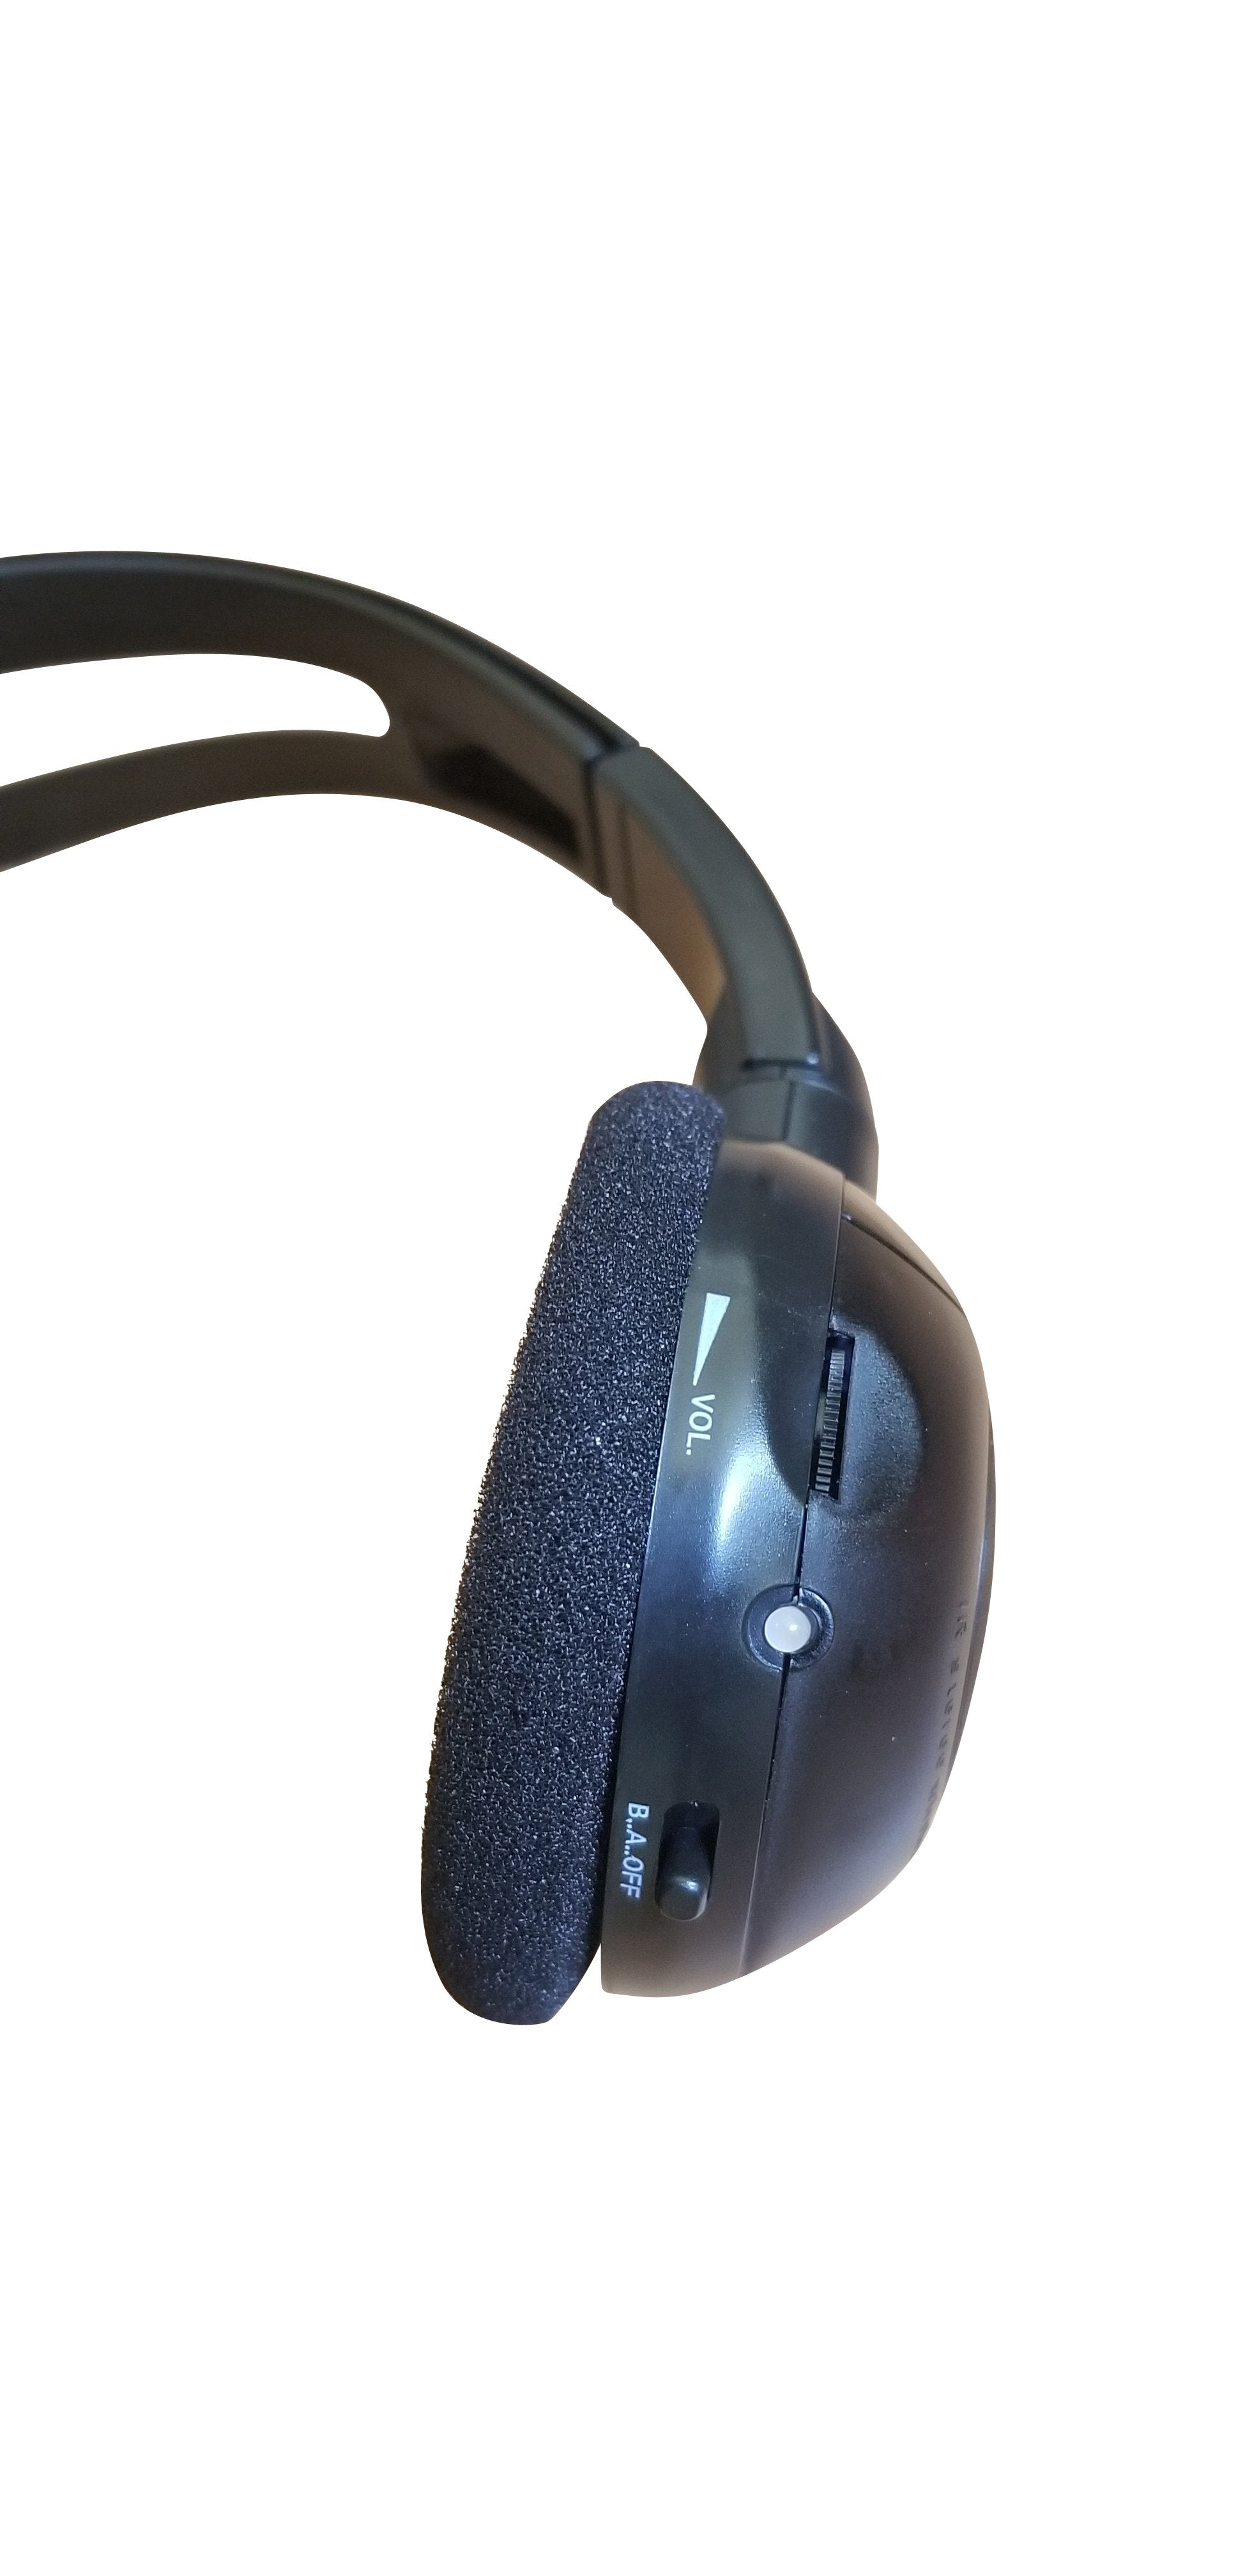 2013 Mazda CX9 Wireless DVD Headphone